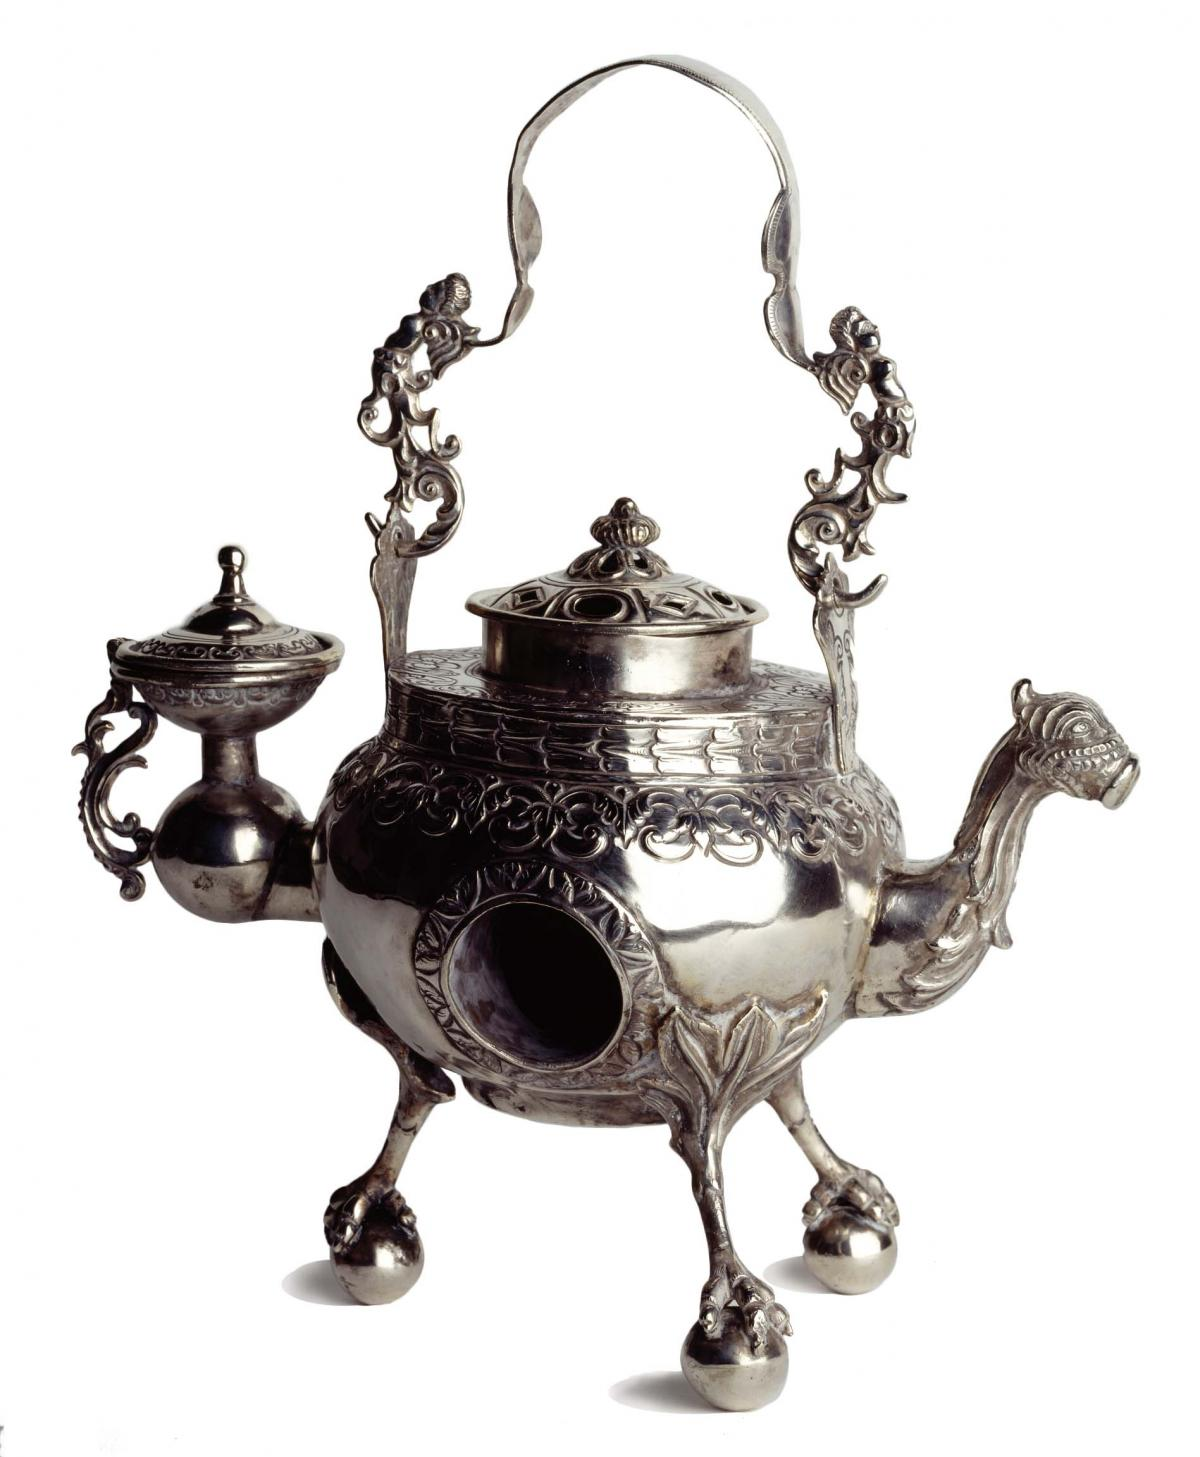 Silver water heater, with a camel head for a spout and hoofed legs for stands, with elaborate filigree work